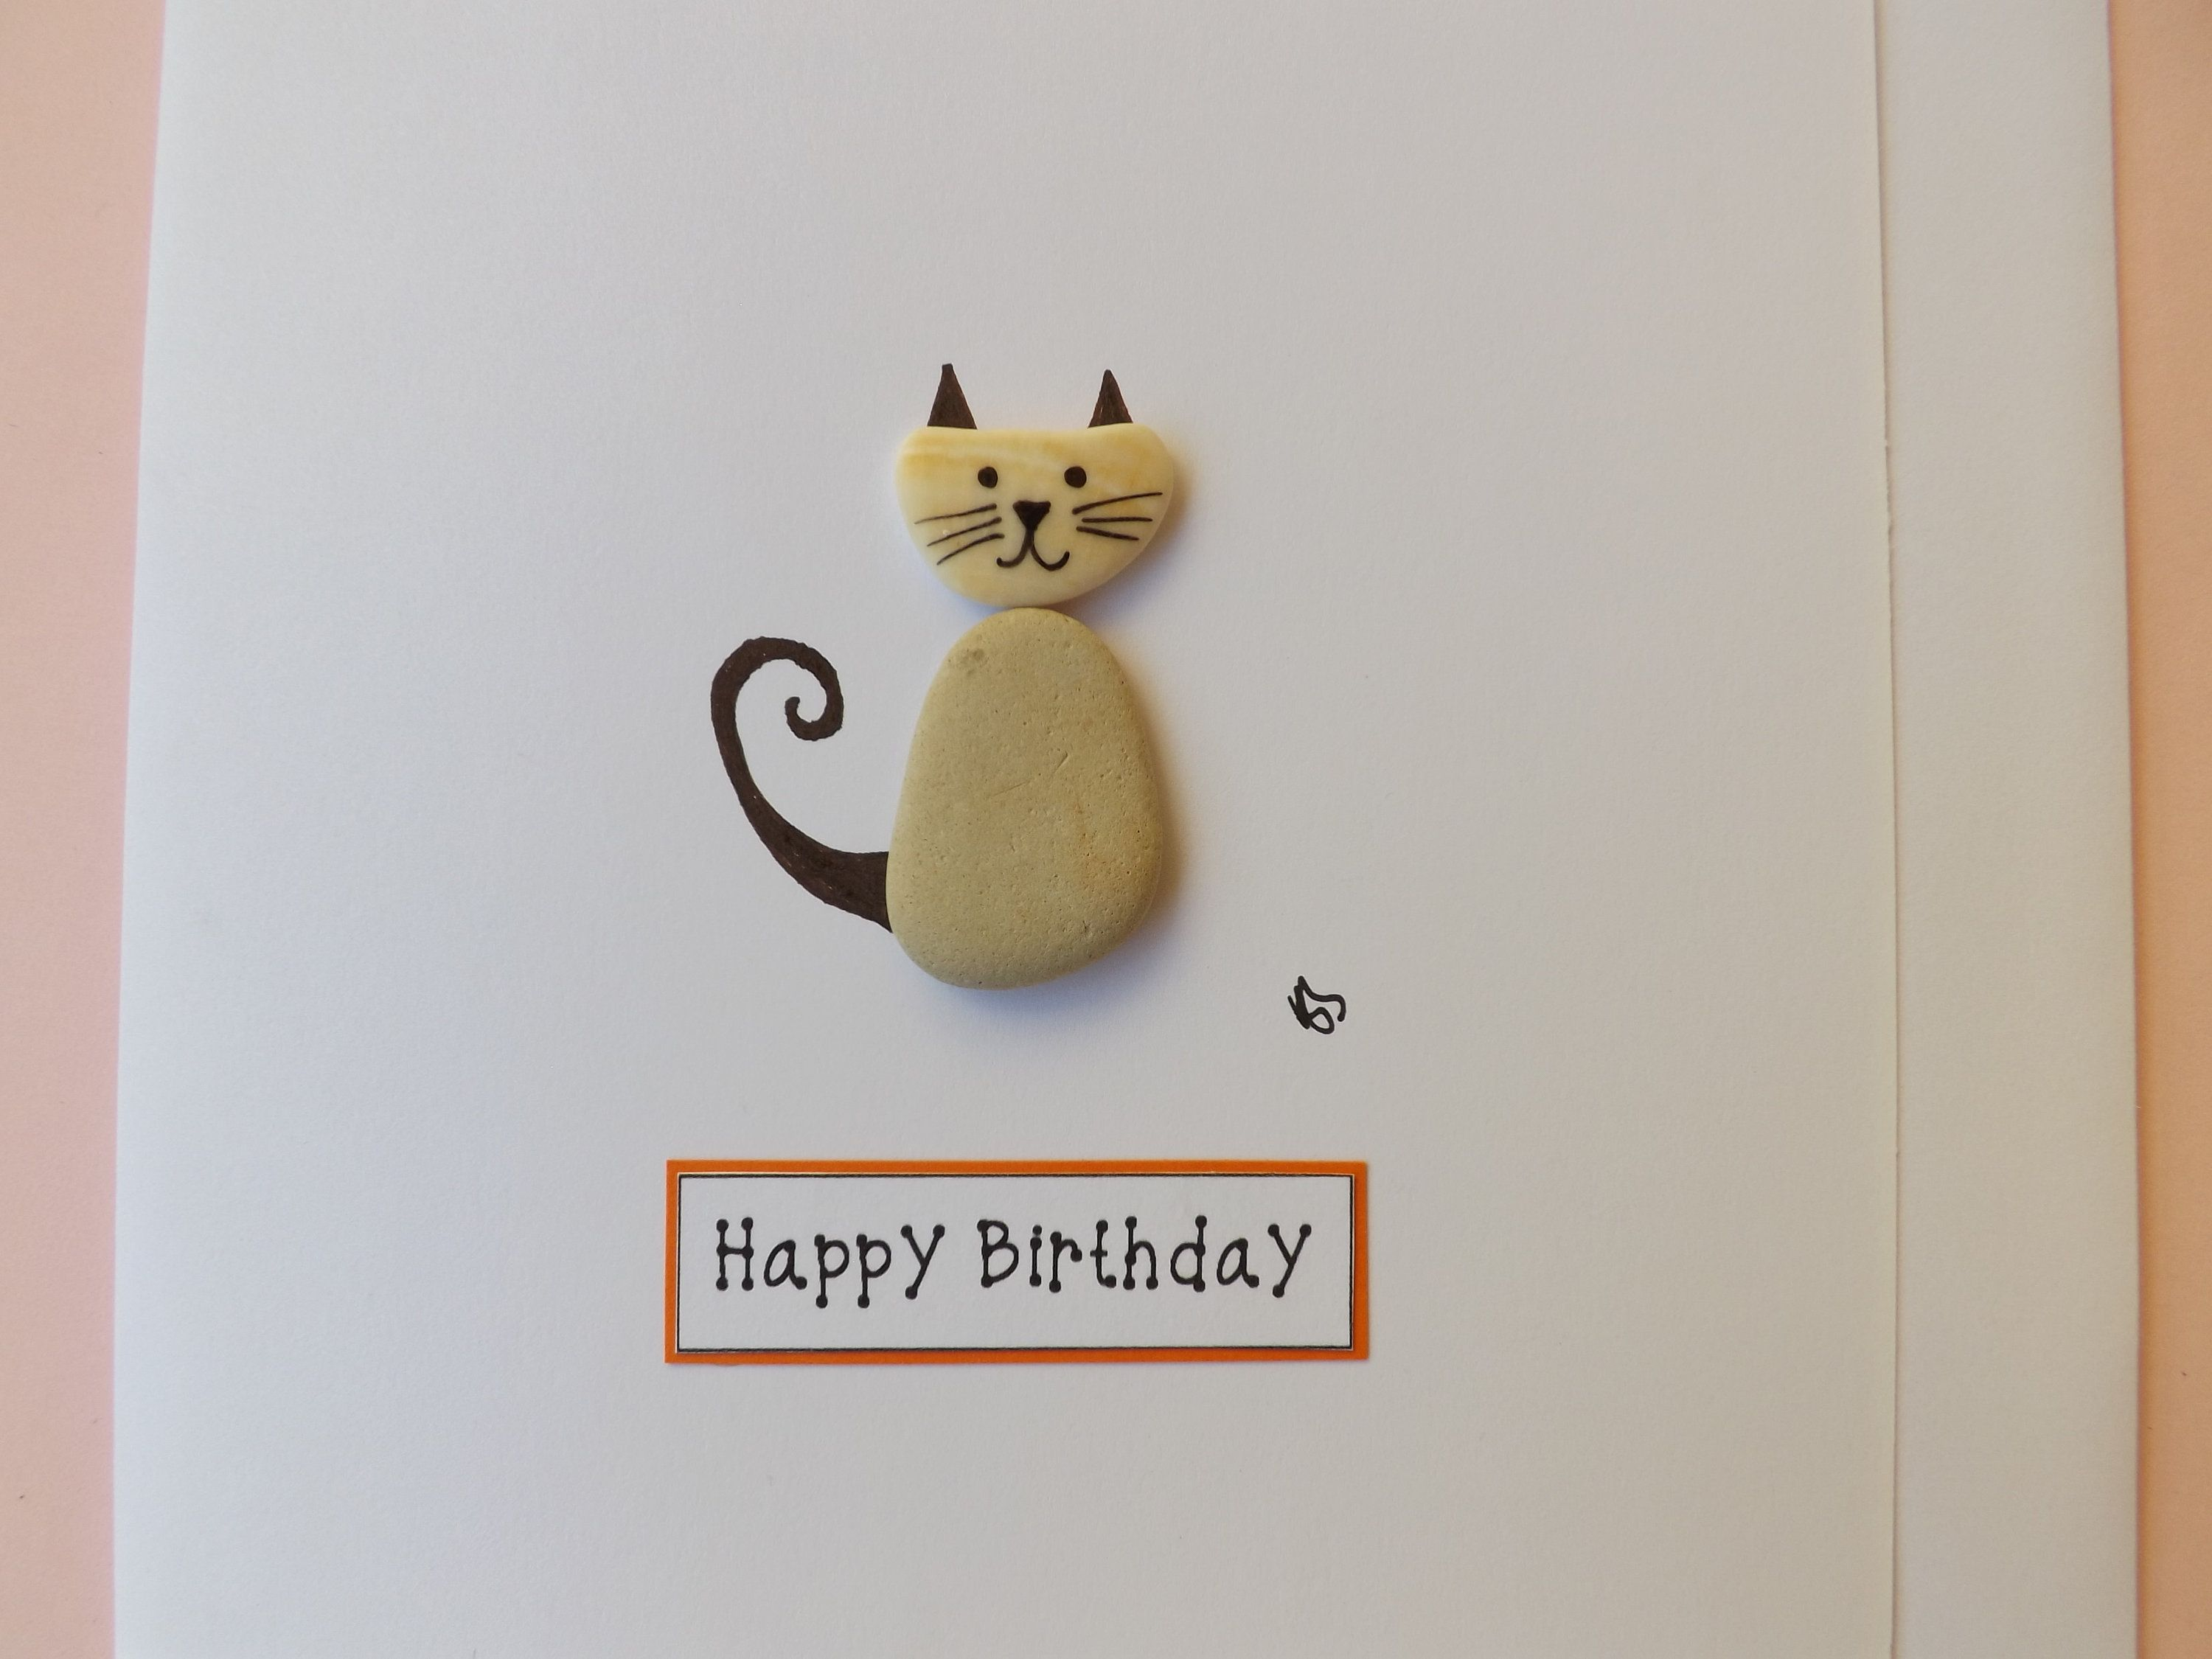 Funny Birthday Card Gift For Cat Lover Ginger Cat Cat Mom Gift Card For Teacher Cat Books And Tea Hand Drawn Card Cat Greeting Cards Original Greeting Card Hand Drawn Cards